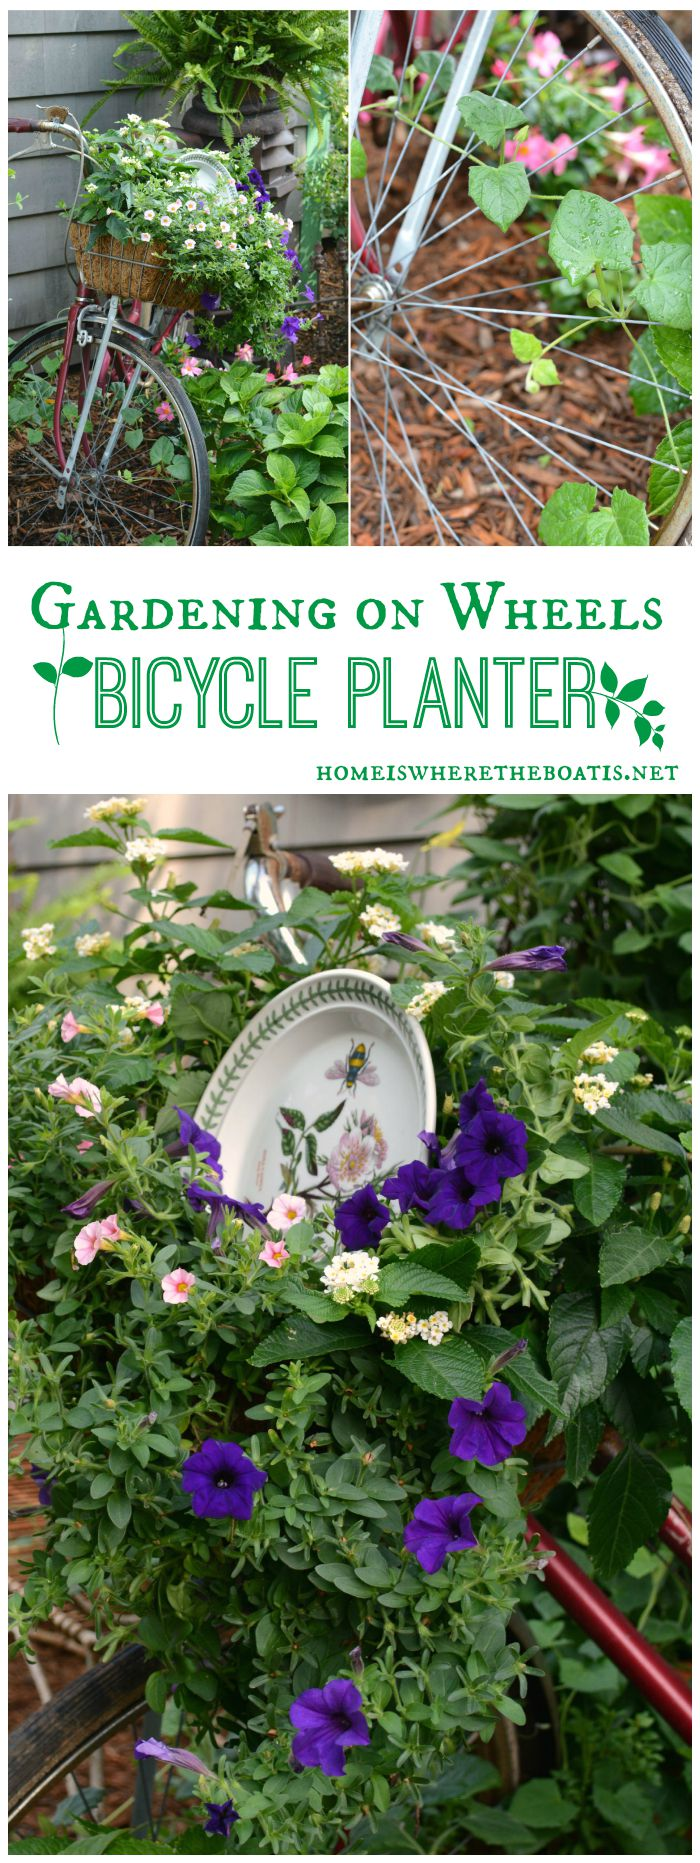 Gardening on Wheels Bicycle Planter